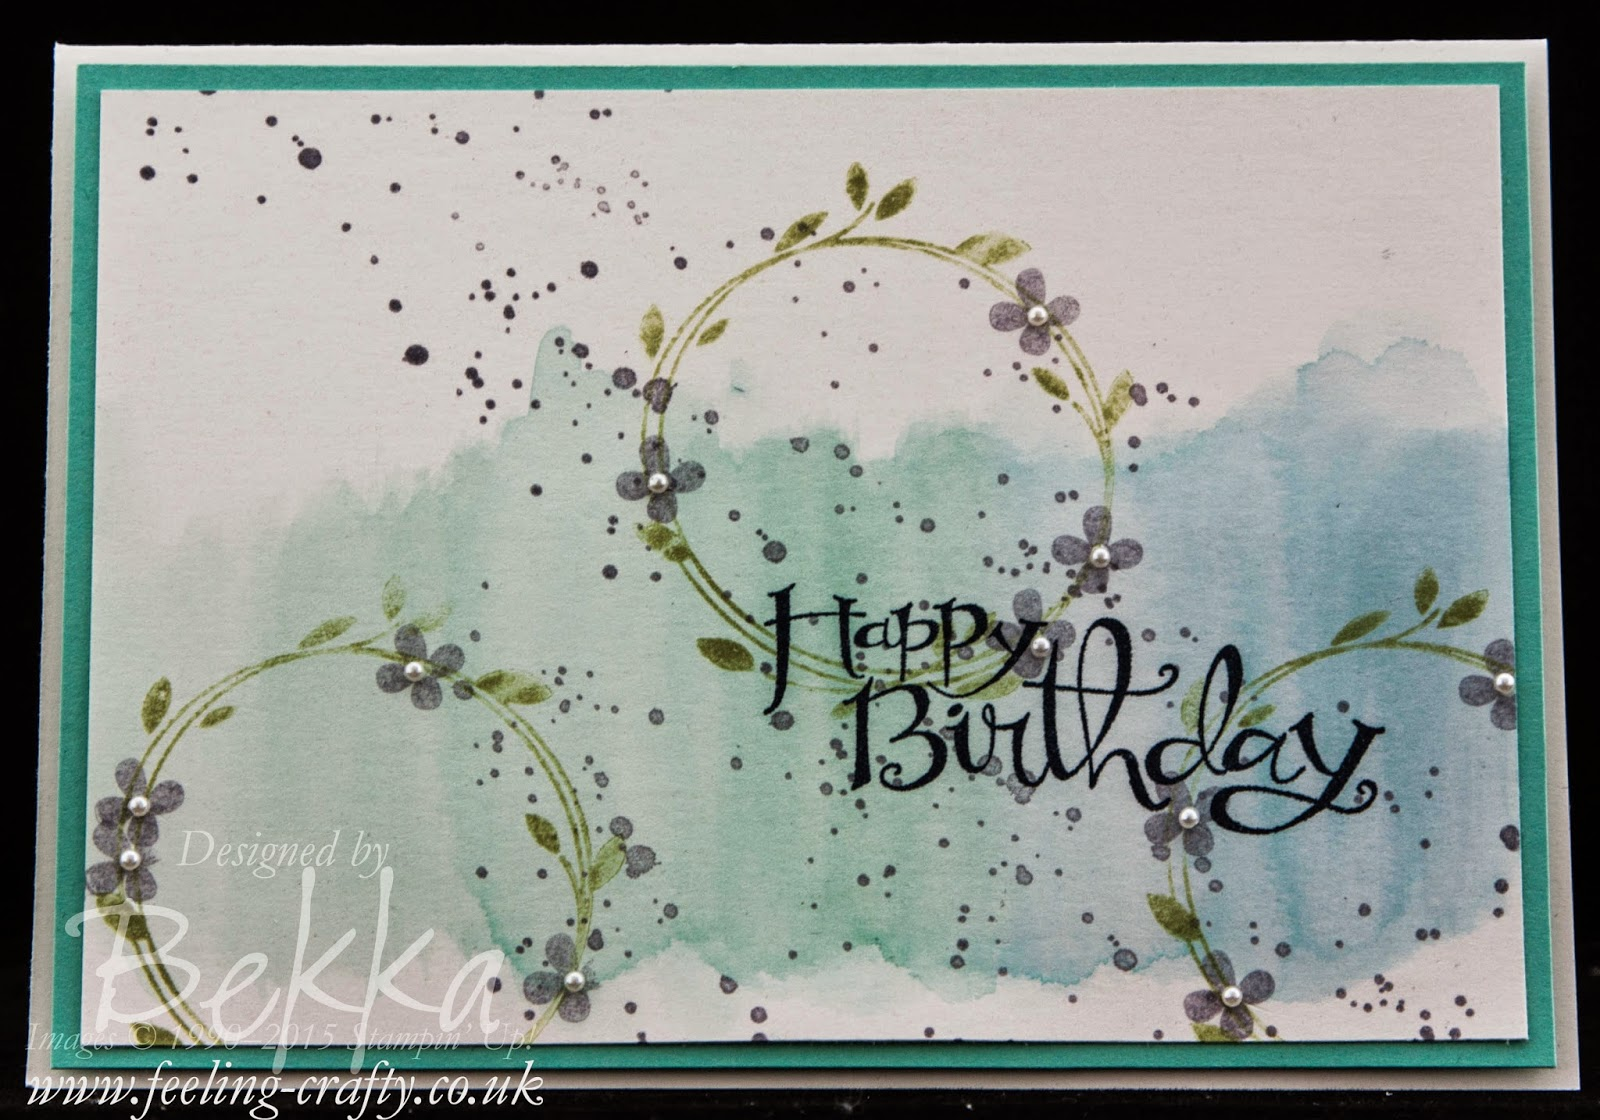 Pretty Your Perfect Day Birthday Card - check out this blog or lots of great ideas